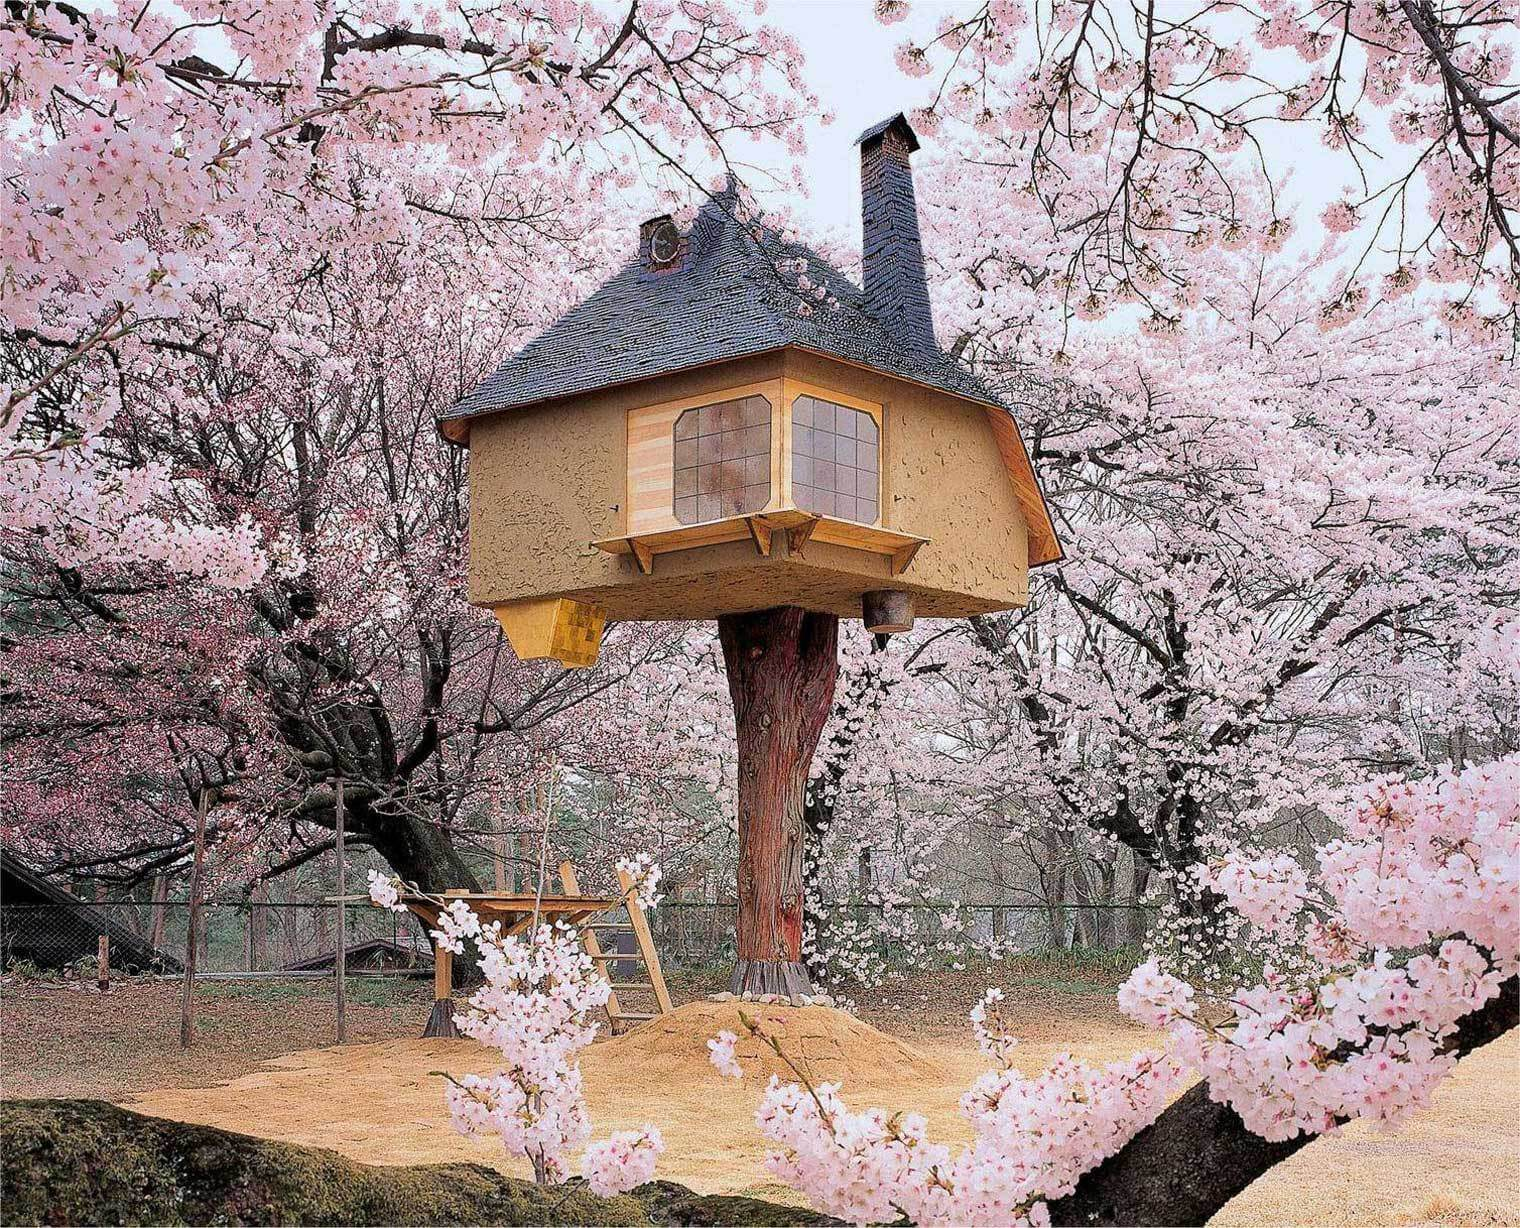 A view of Tetsu treehouse in Japan surrounded by cherry blossom